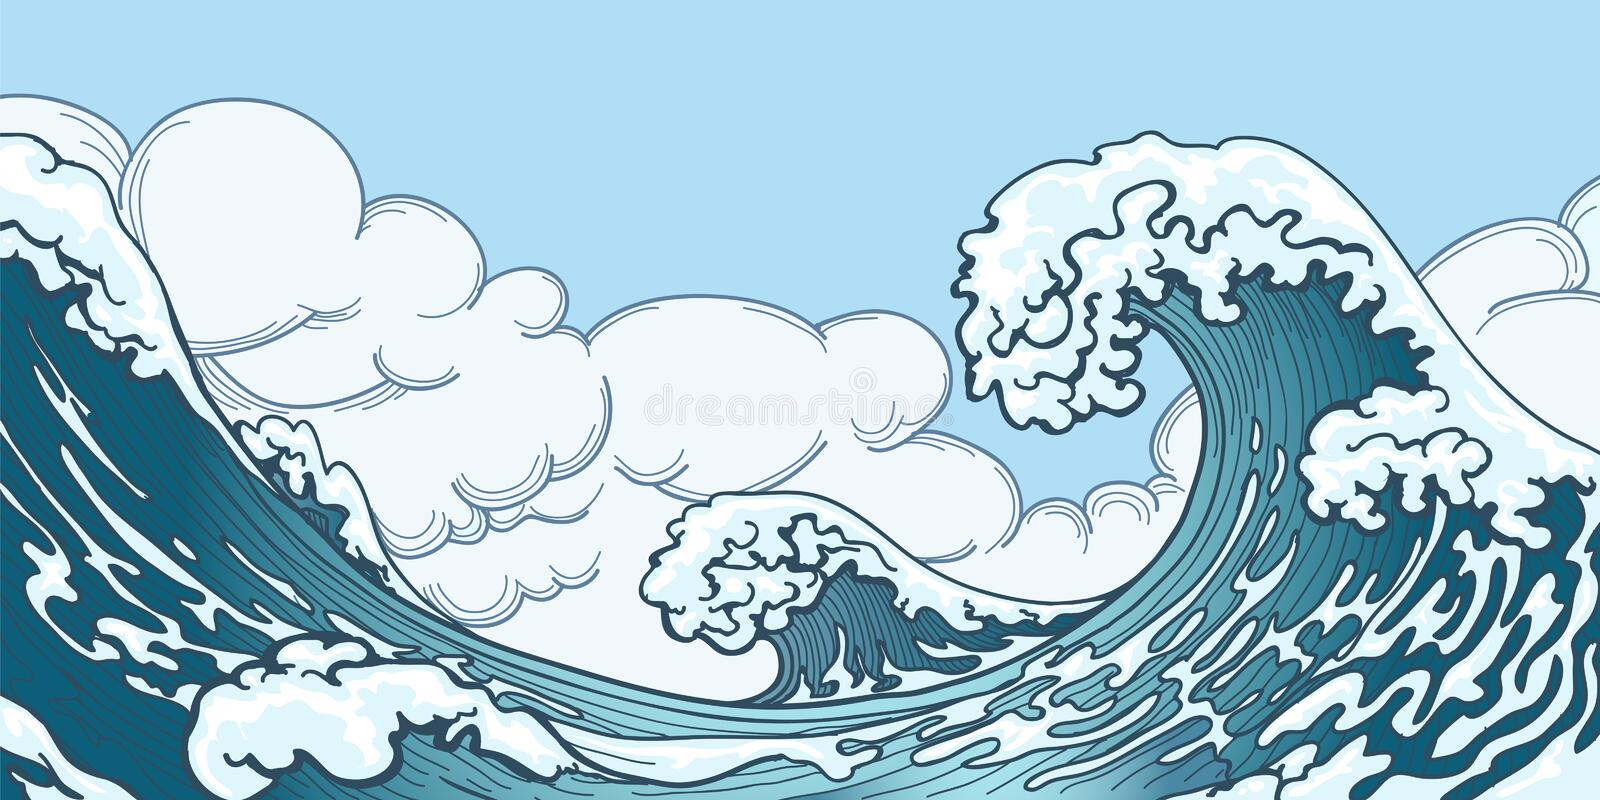 Ocean big wave in Japanese style. Water splash, storm space, weather nature. Hand drawn big wave vector illustration vector illustration